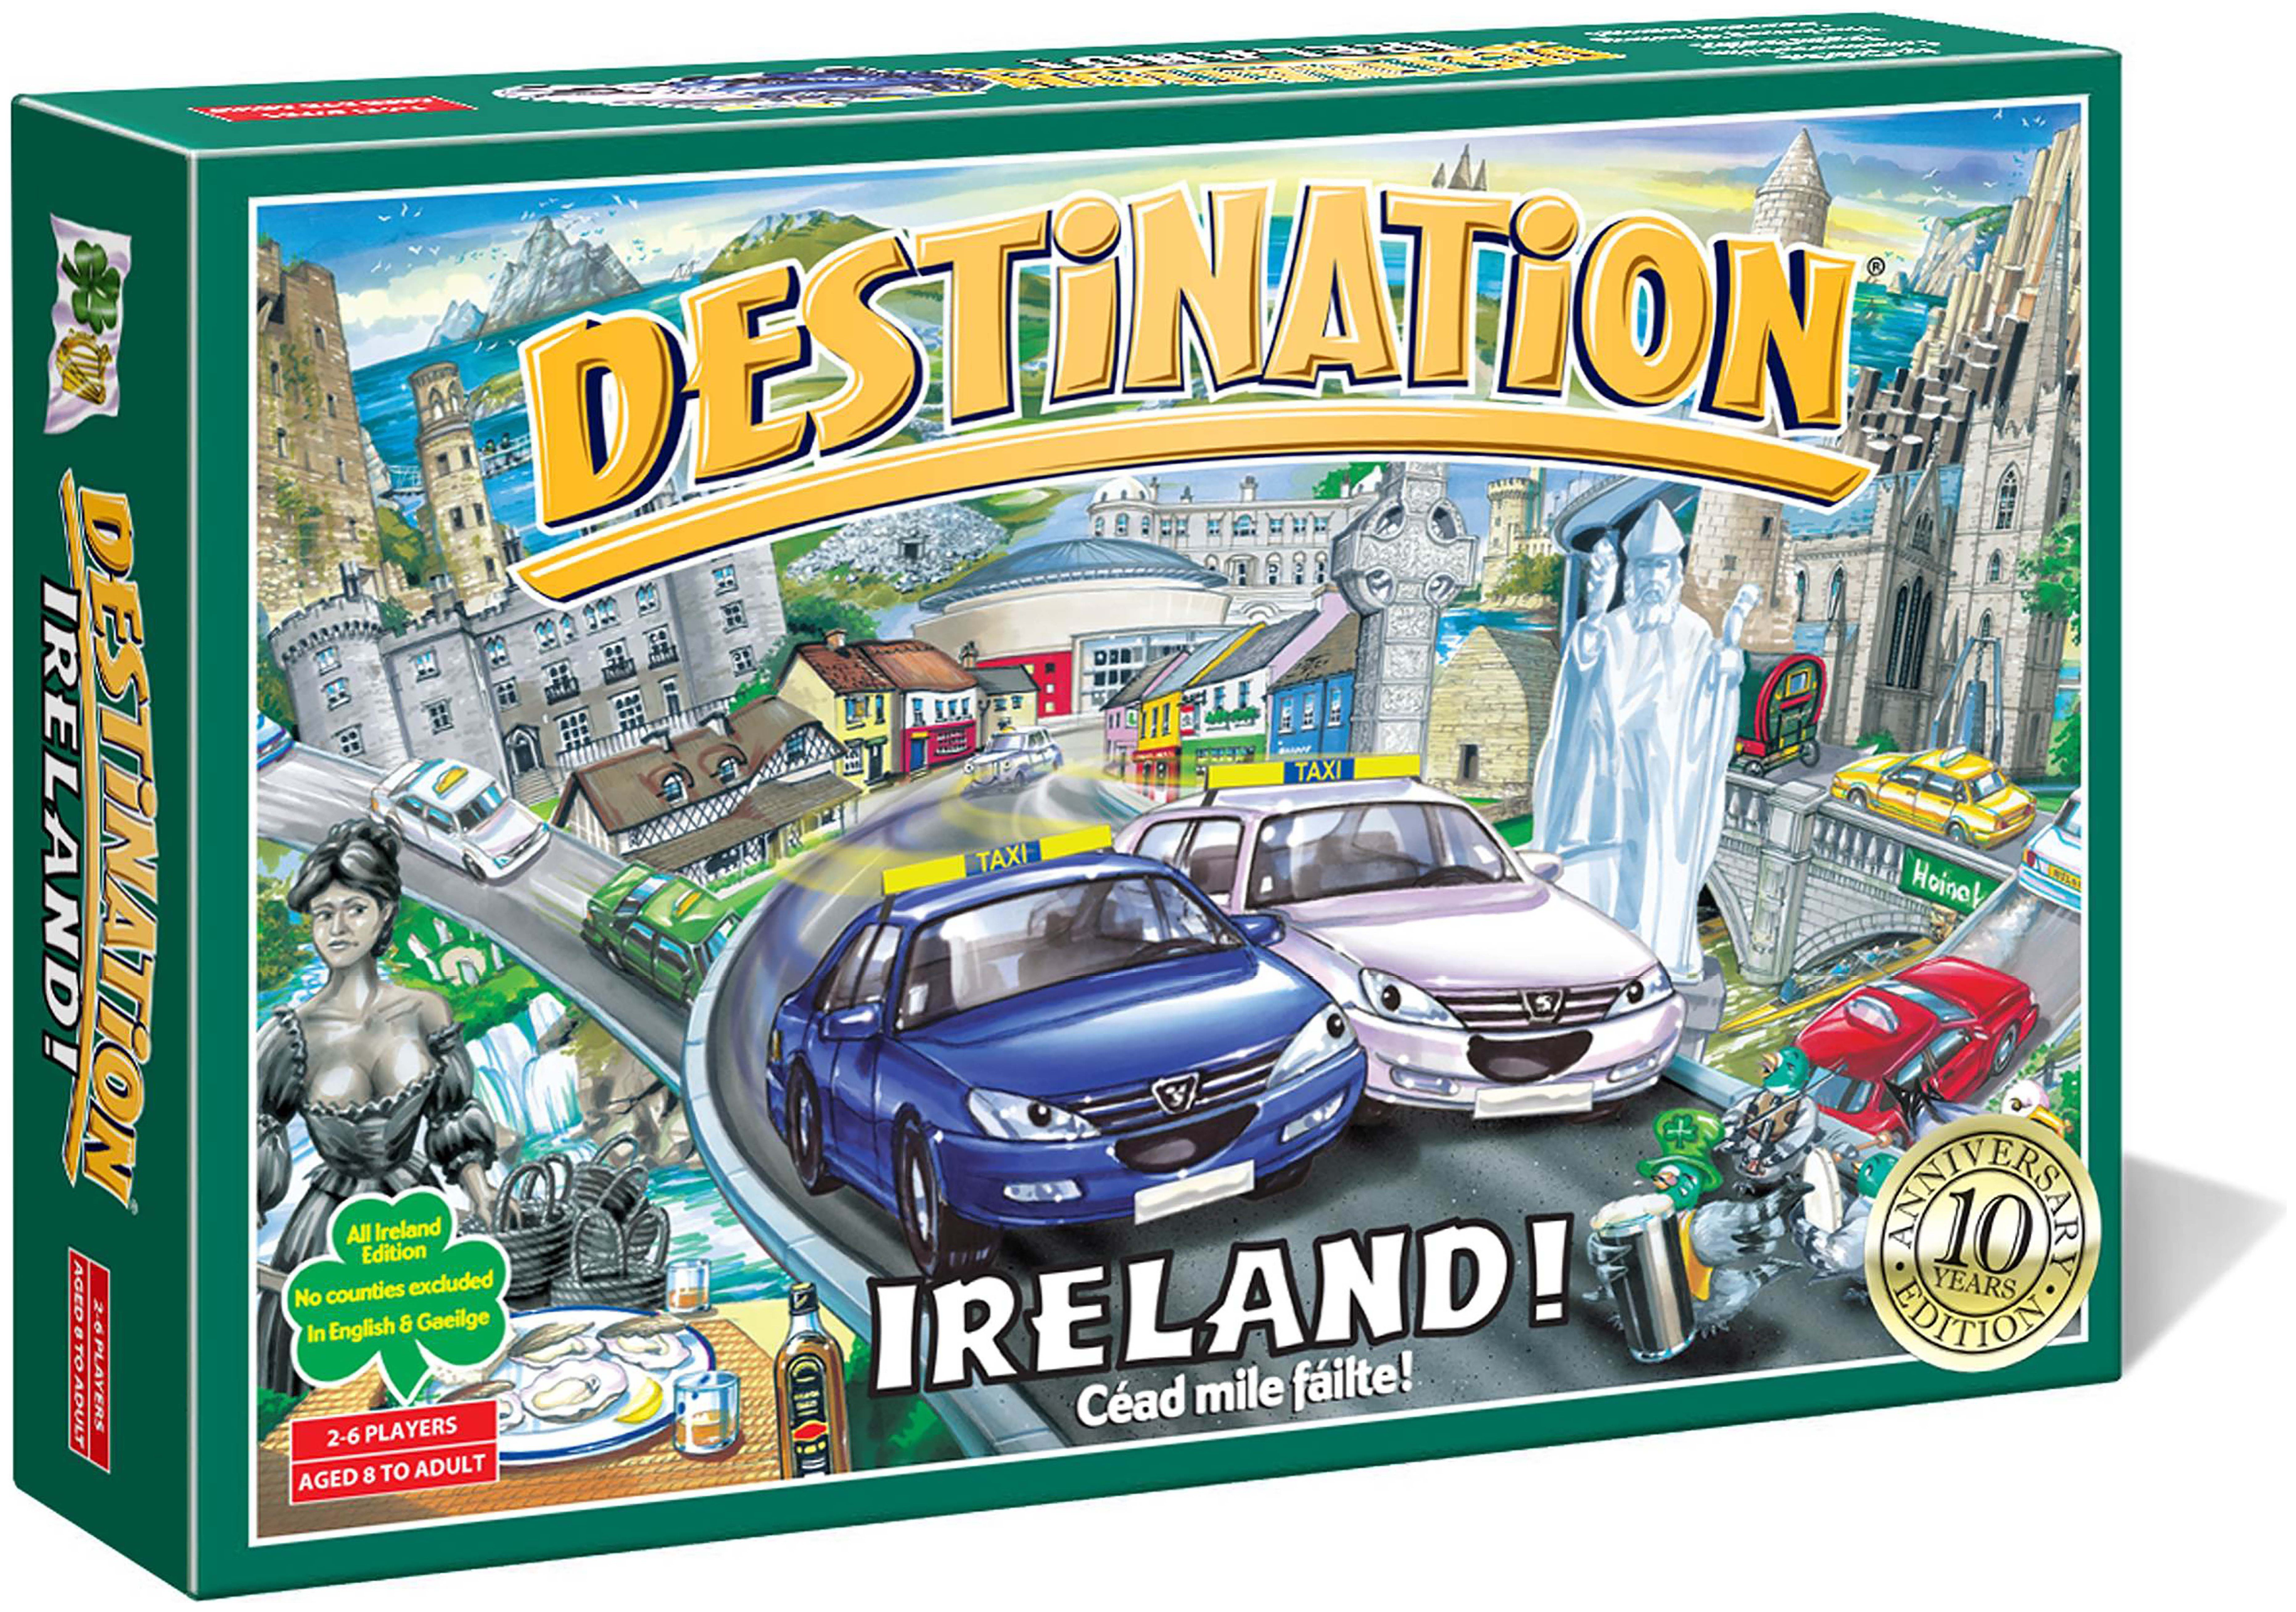 Image of Destination Ireland Board Game.